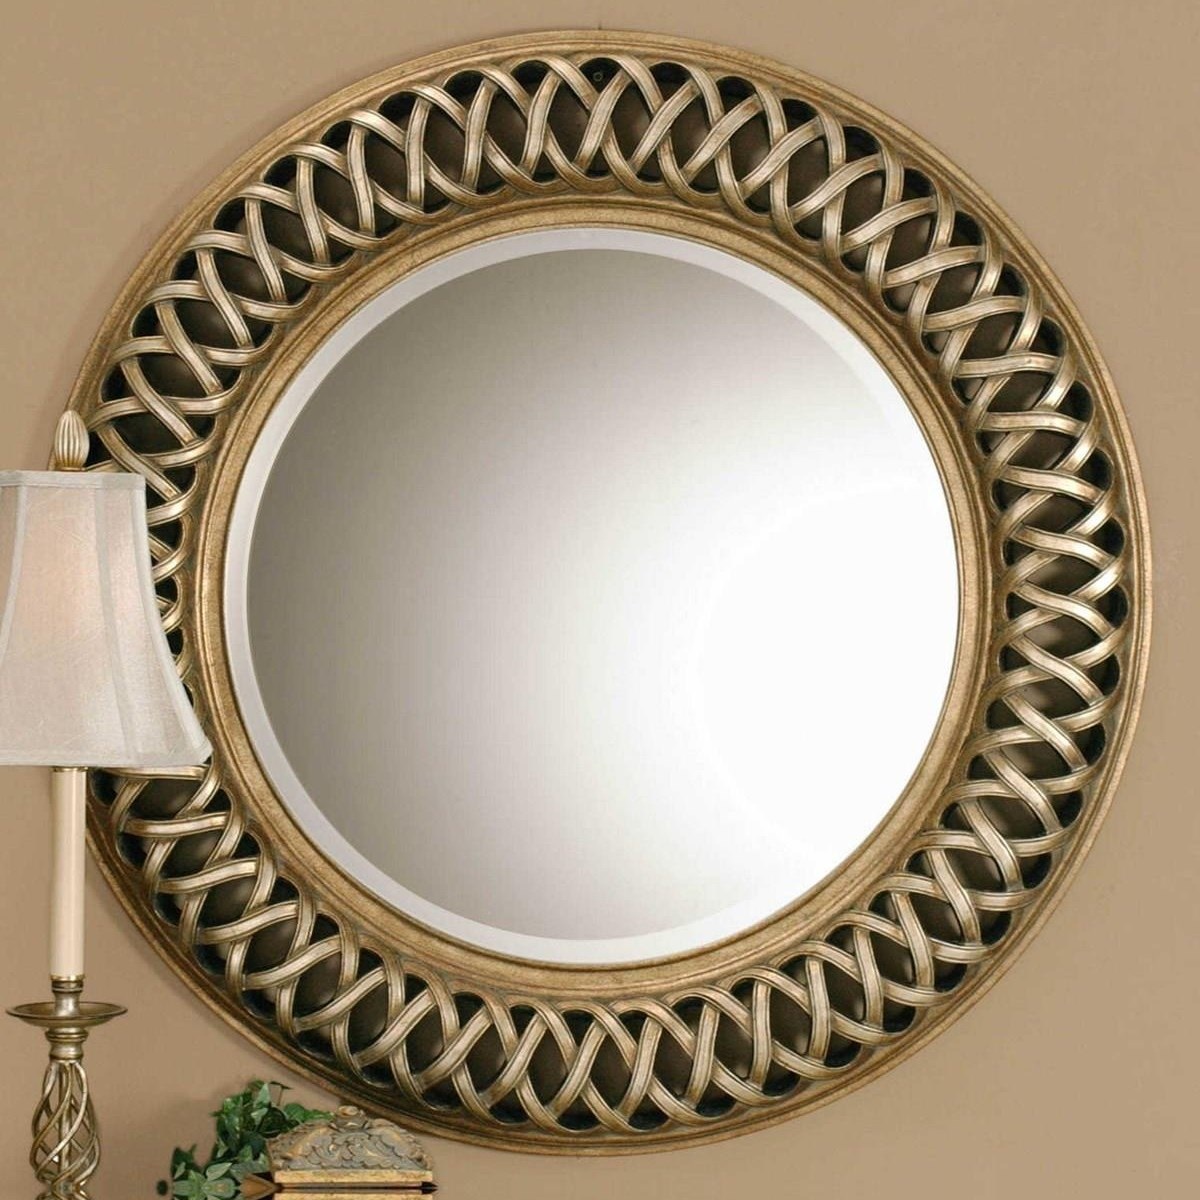 Mirrors ELIANA WALL MIRROR by Unique at Walker's Furniture